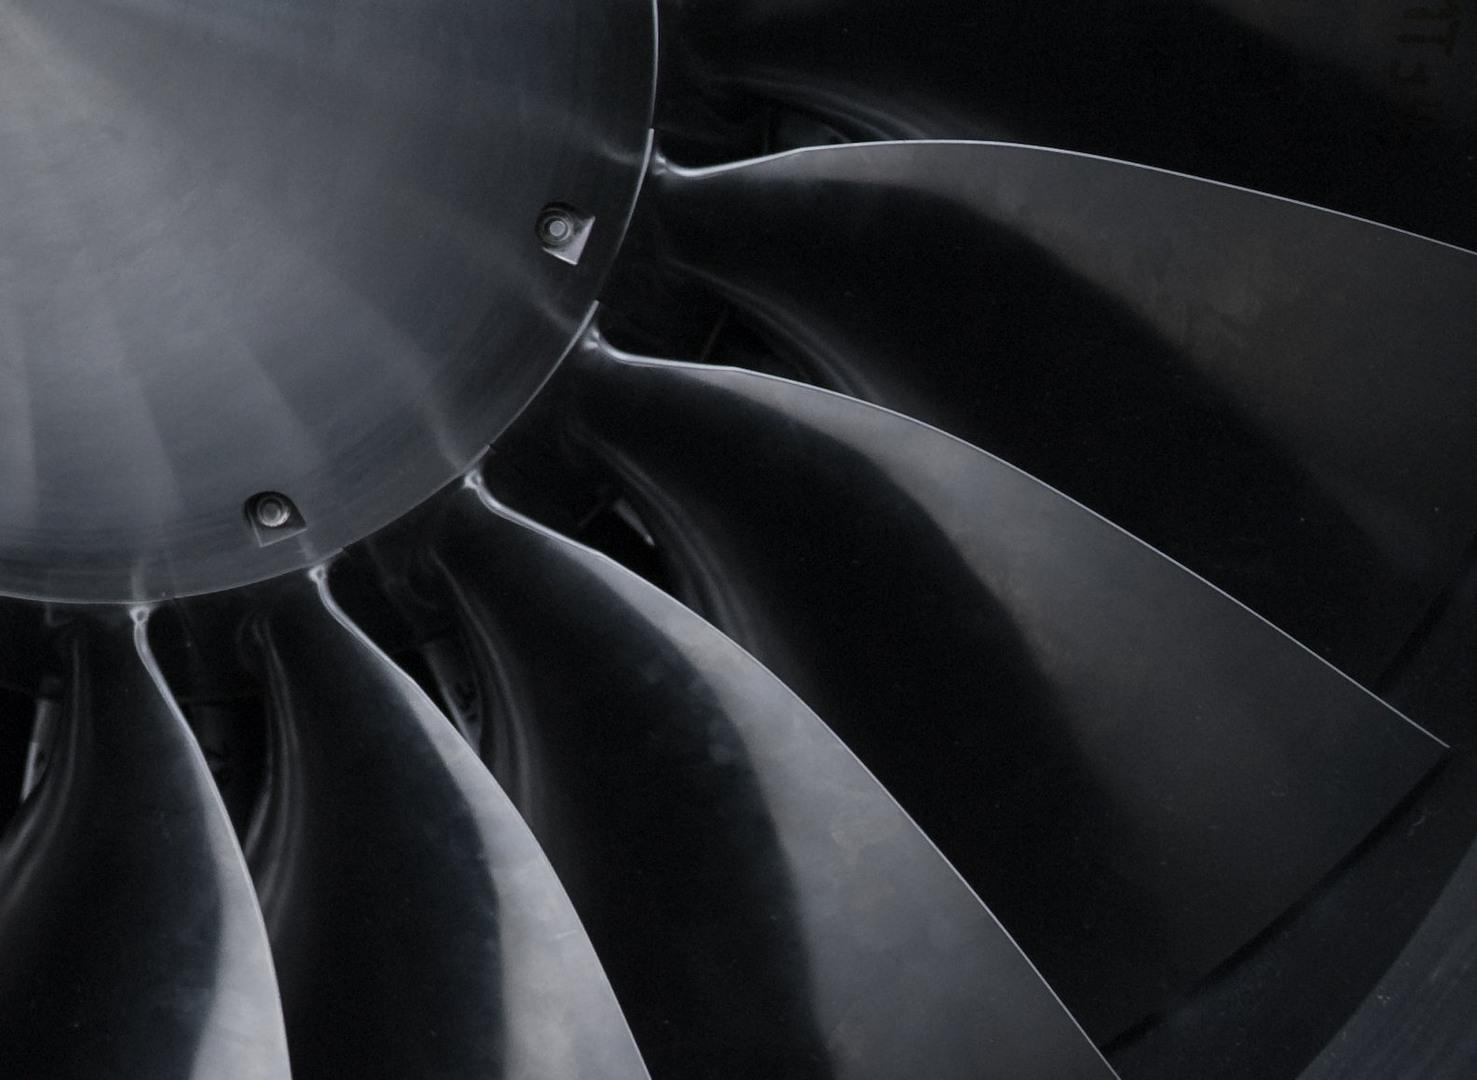 Eurofighter Turbine by André in Turbine on Fotopedia - The Photo Encyclopedia